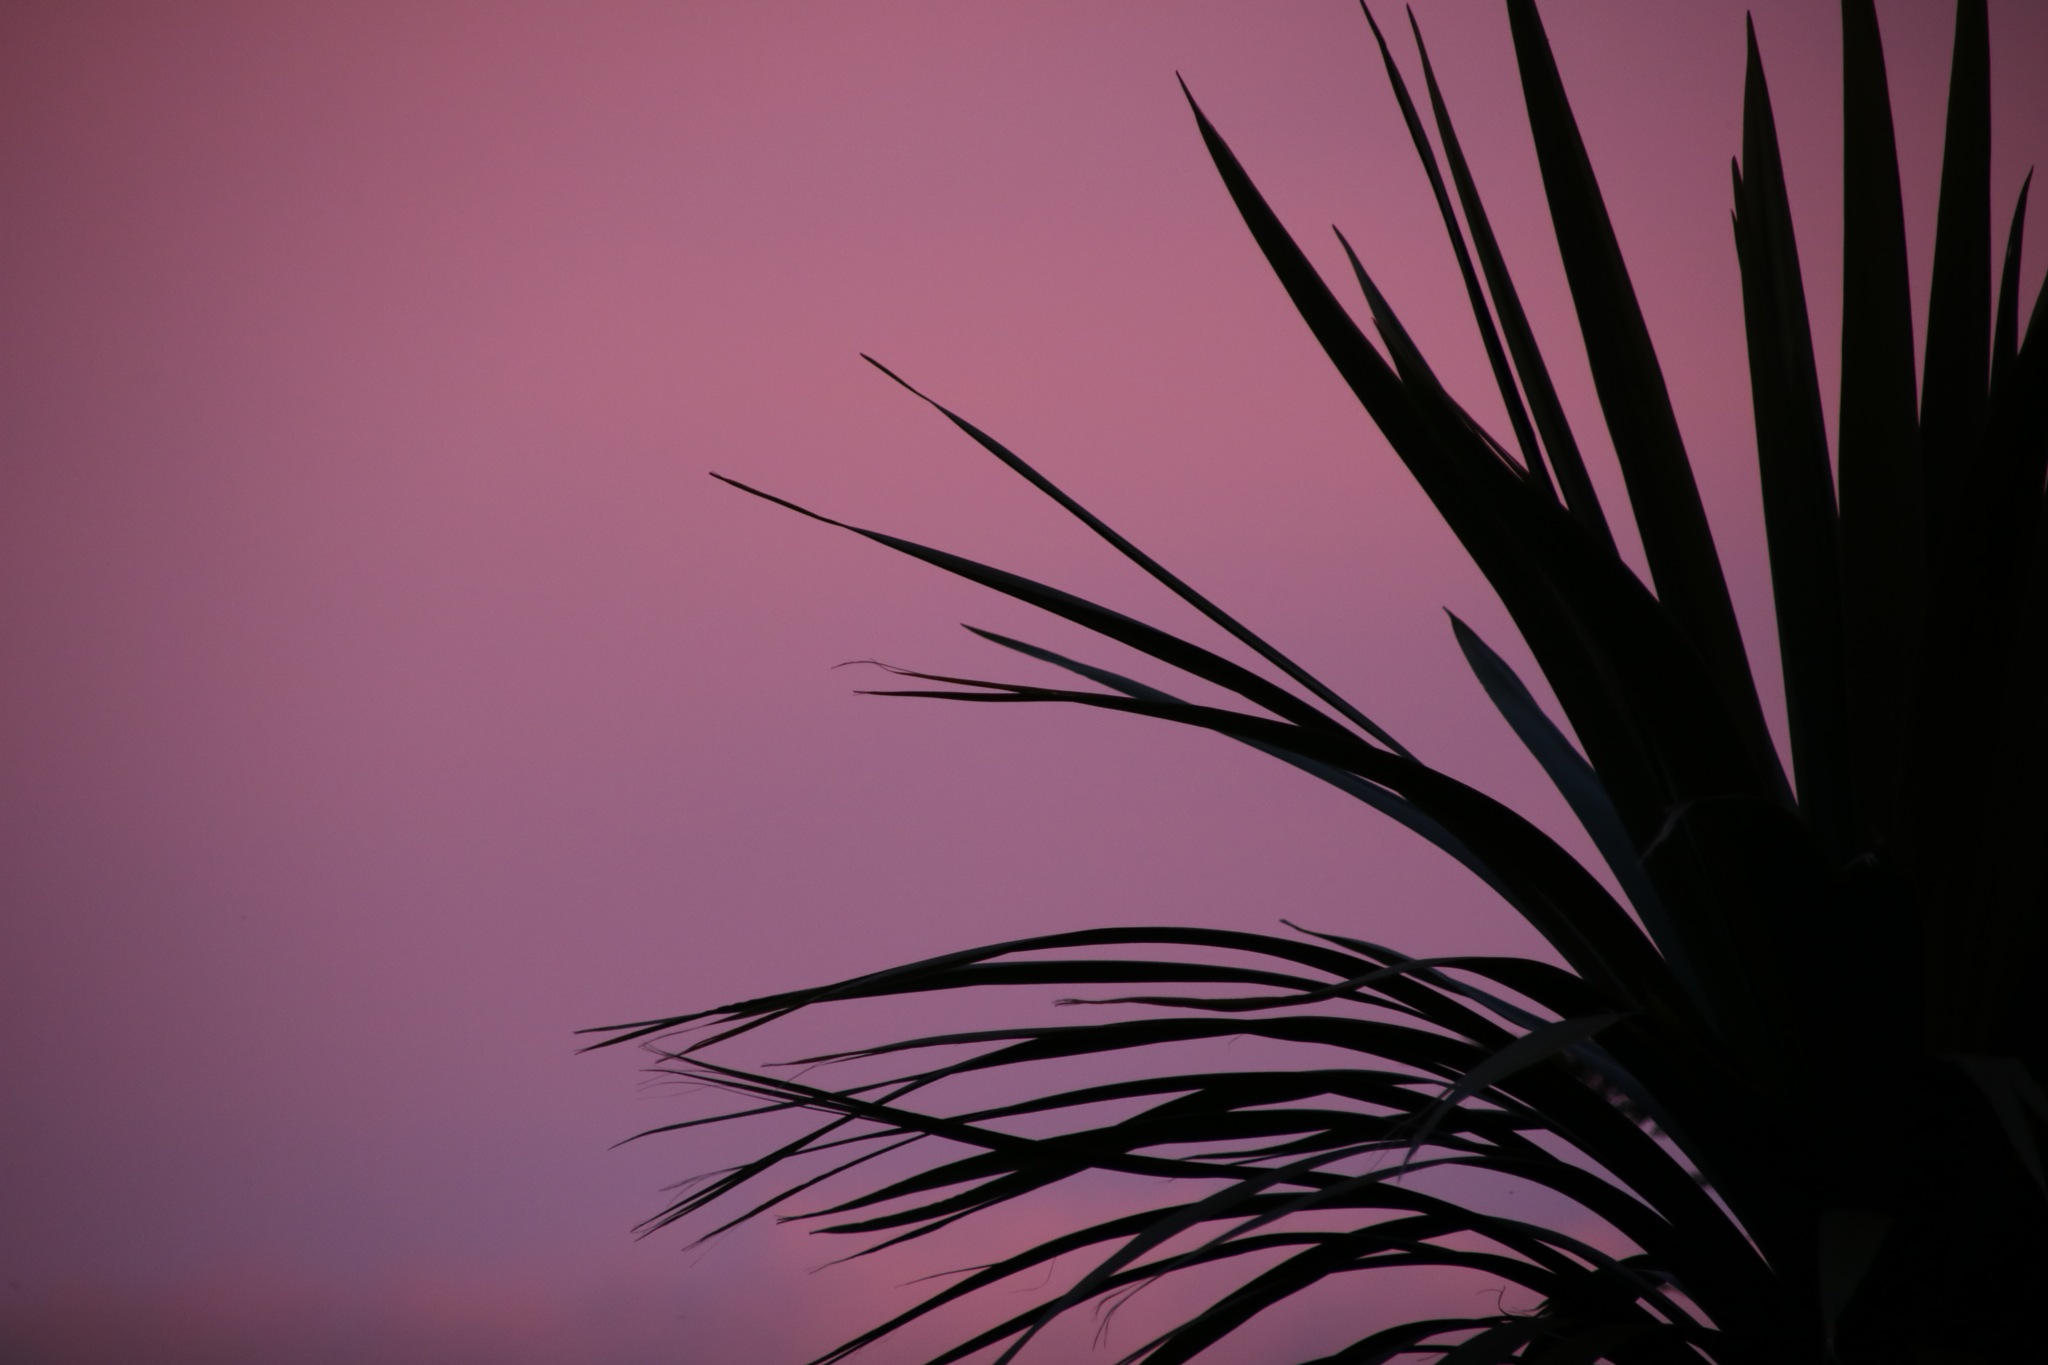 Sunset and a palmtree by phxtgrphygermany